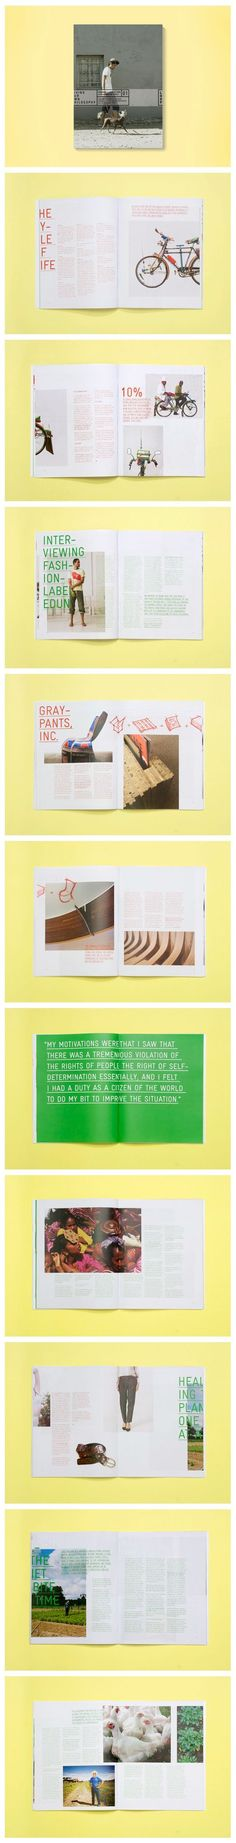 brochure/print reference - love this layout and design Graphic Design Magazine, Magazine Layout Design, Book Design Layout, Graphic Design Layouts, Print Layout, Magazine Layouts, Editorial Design Magazine, Editorial Design Layouts, Mise En Page Magazine